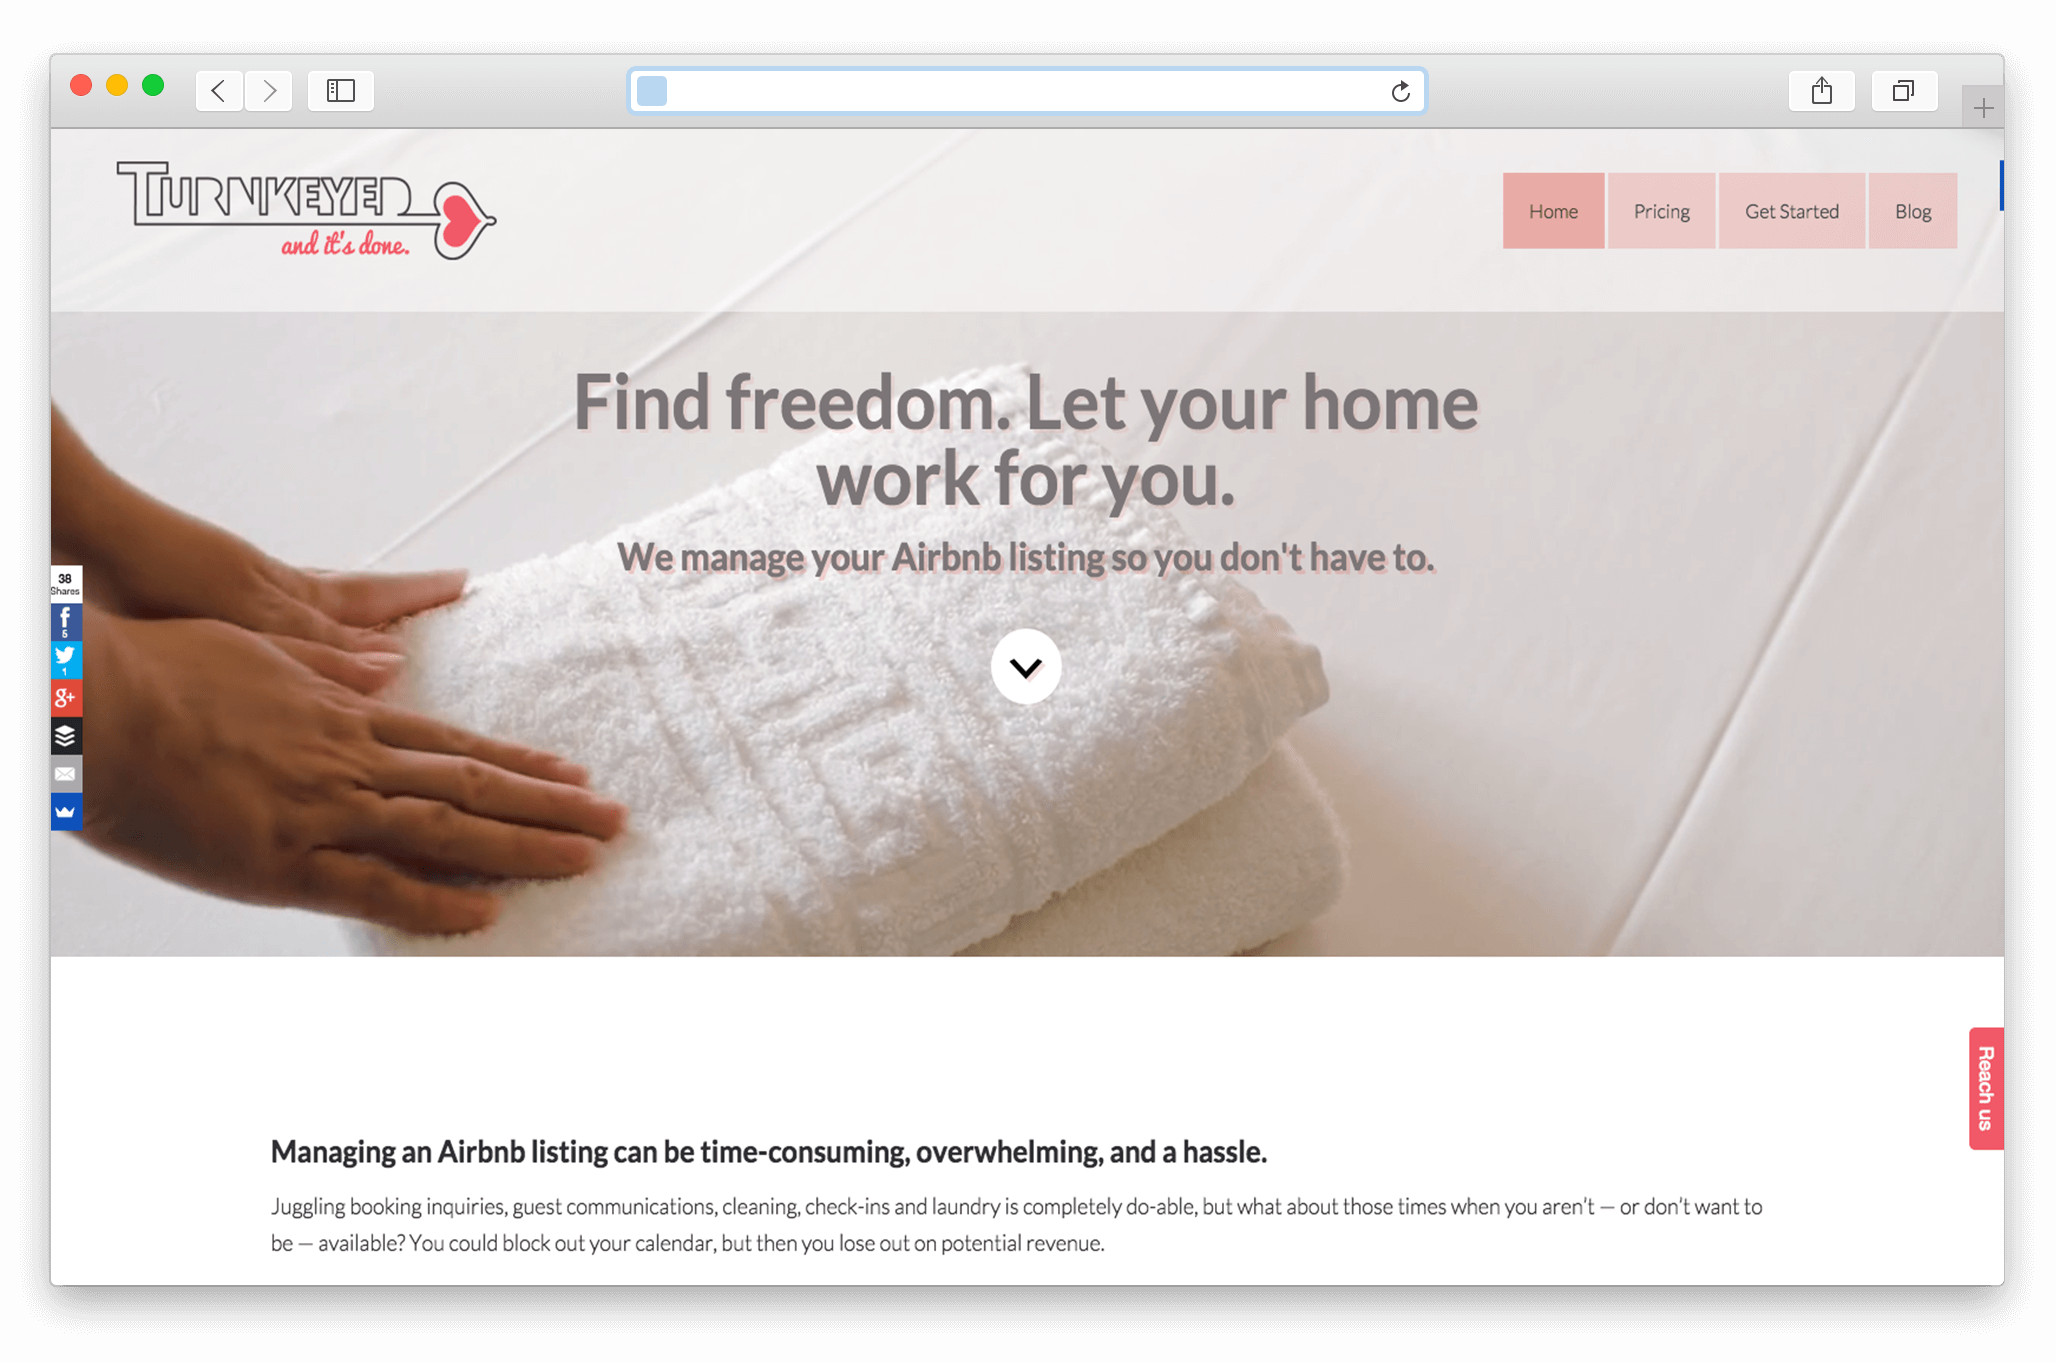 Turnkeyed Airbnb Services